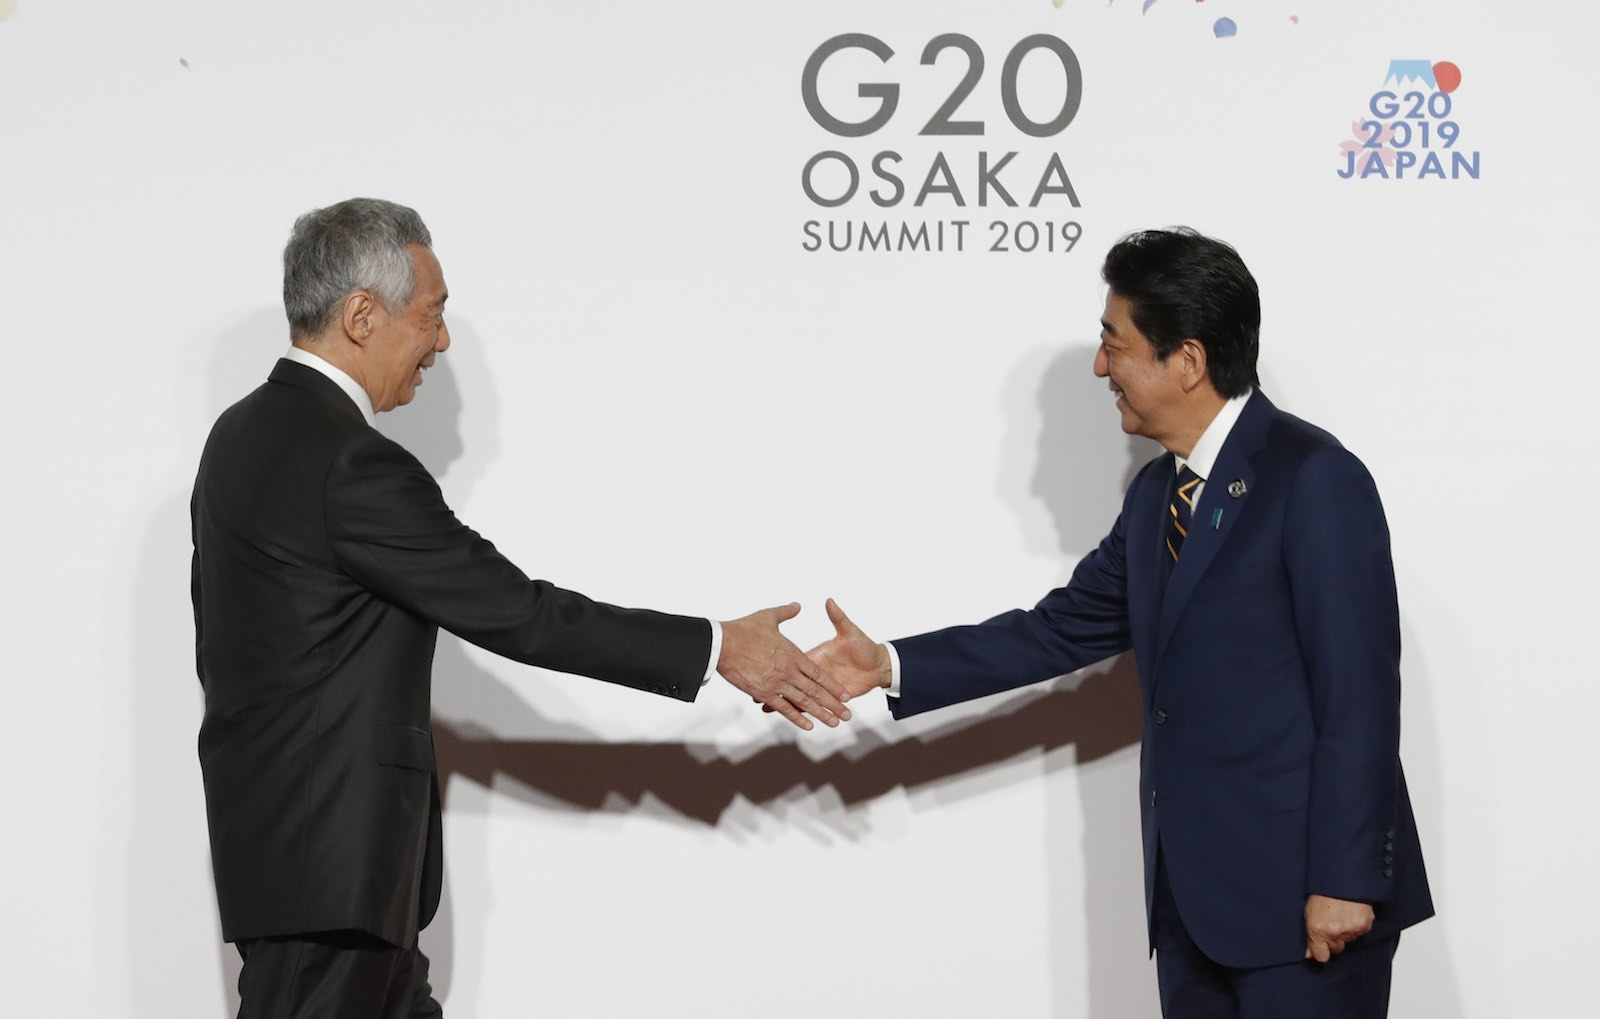 Singapore PM Lee Hsien Loong (L) is welcomed by Japanese PM Shinzo Abe at the G20 summit, June 2019 in Osaka, Japan. (Photo: Kim Kyung-Hoon via Getty)